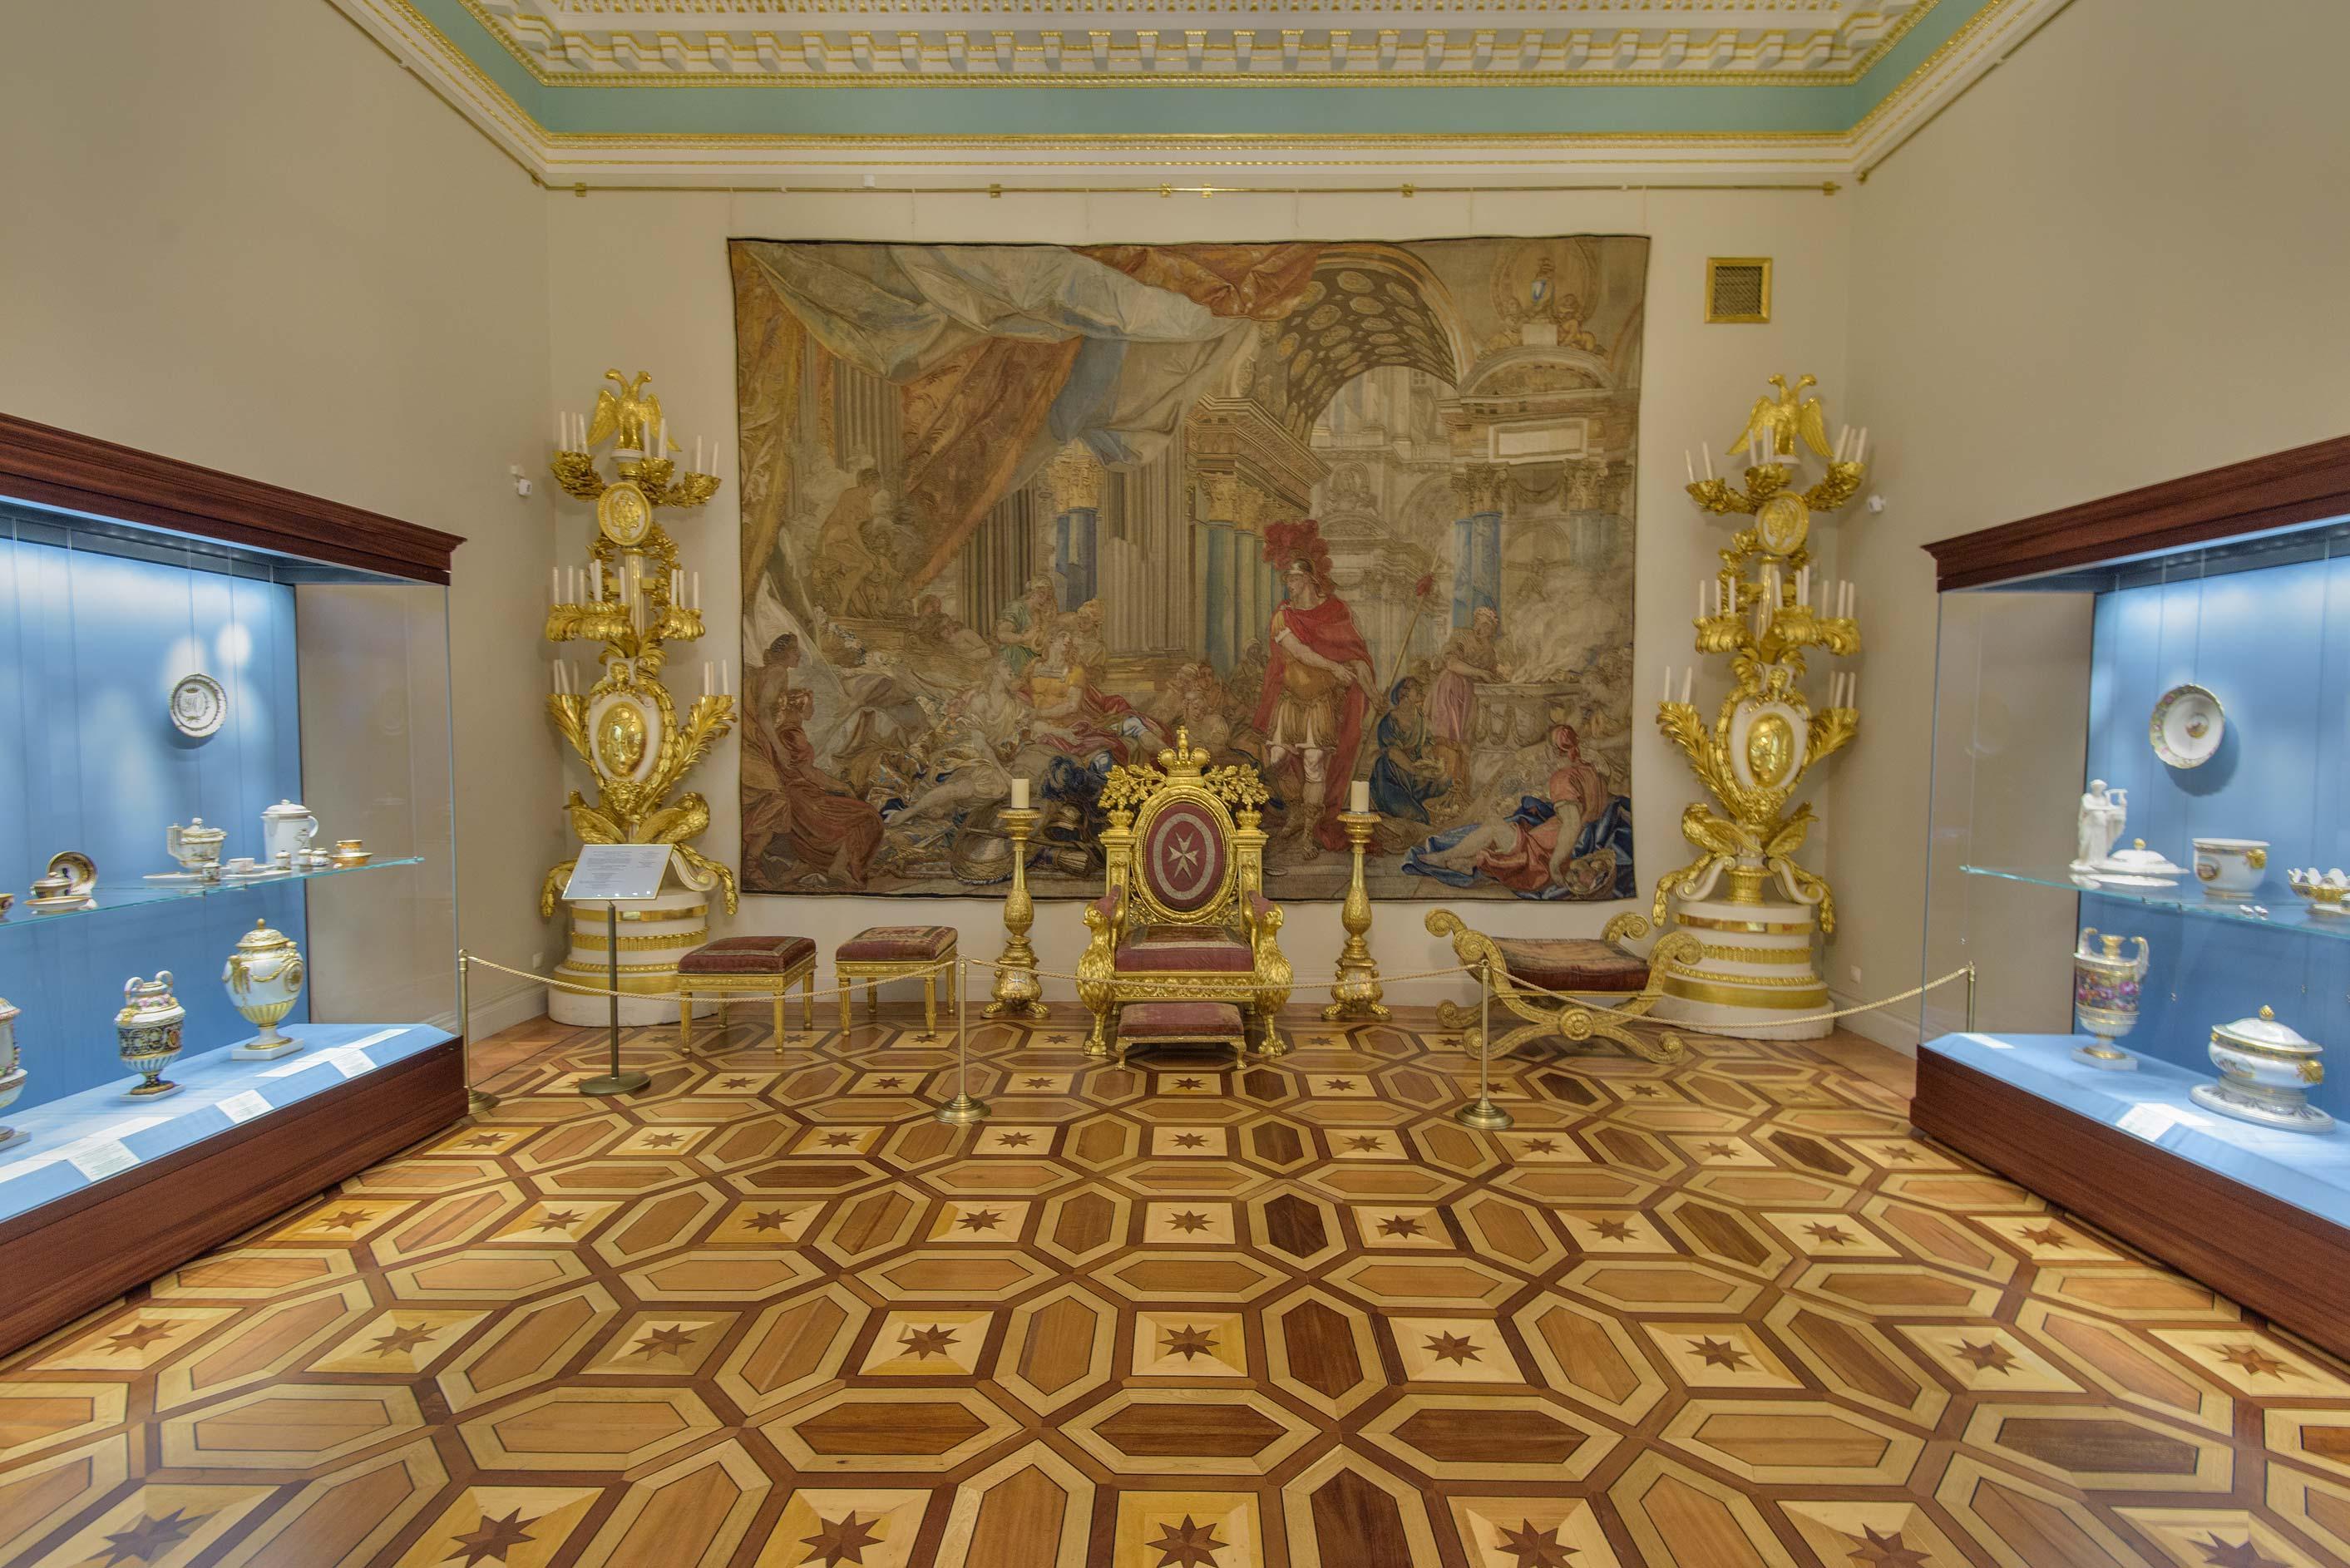 Tapestry room in Hermitage Museum. St.Petersburg, Russia